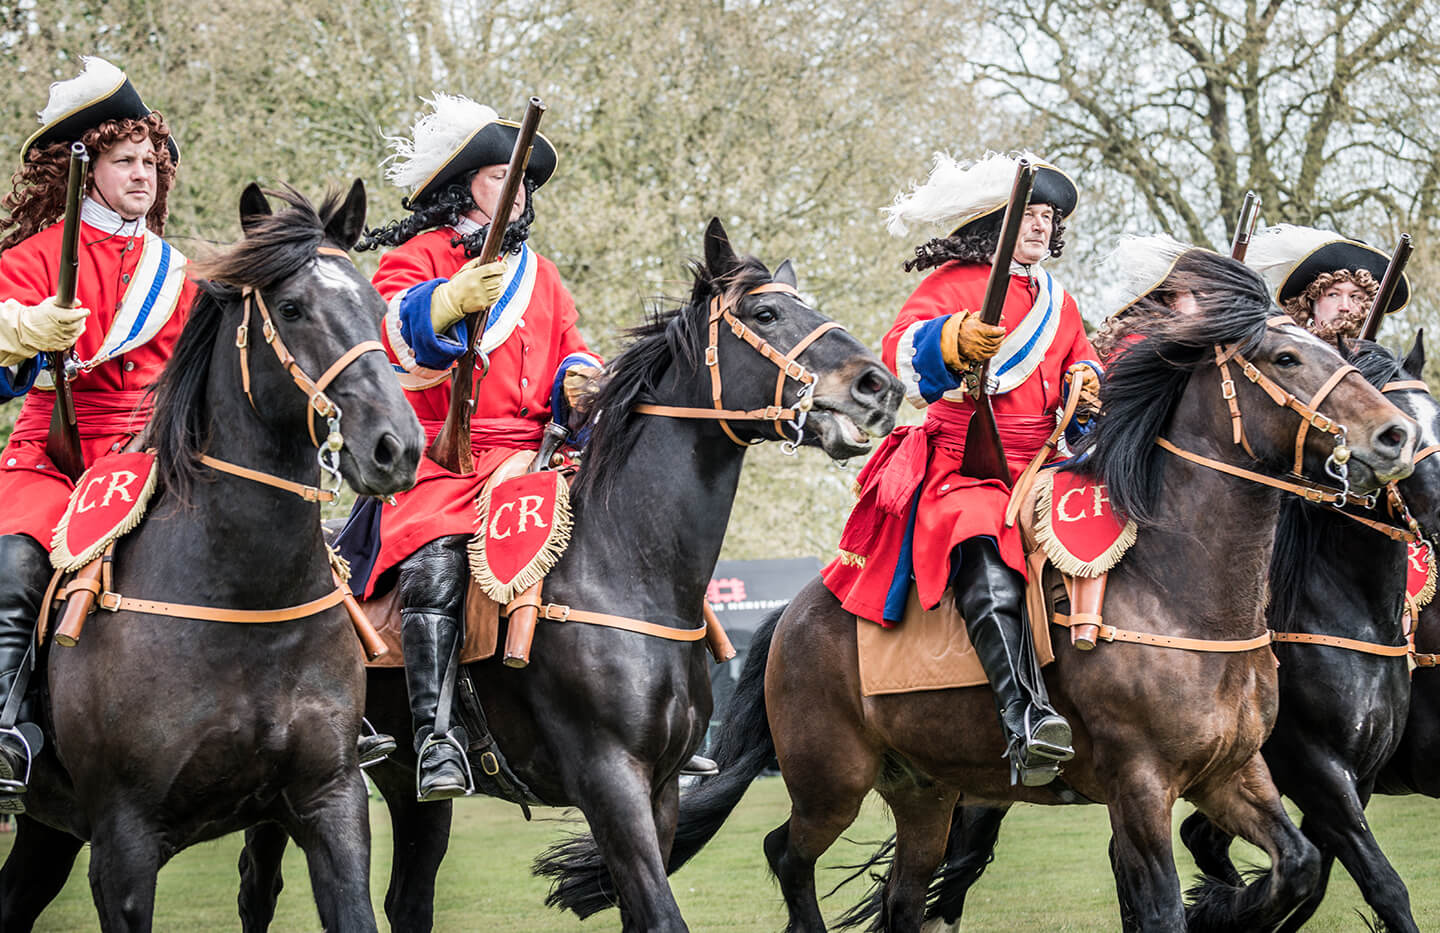 Four 17th century horsemen charge. © Stephen Moss/PhotoSM